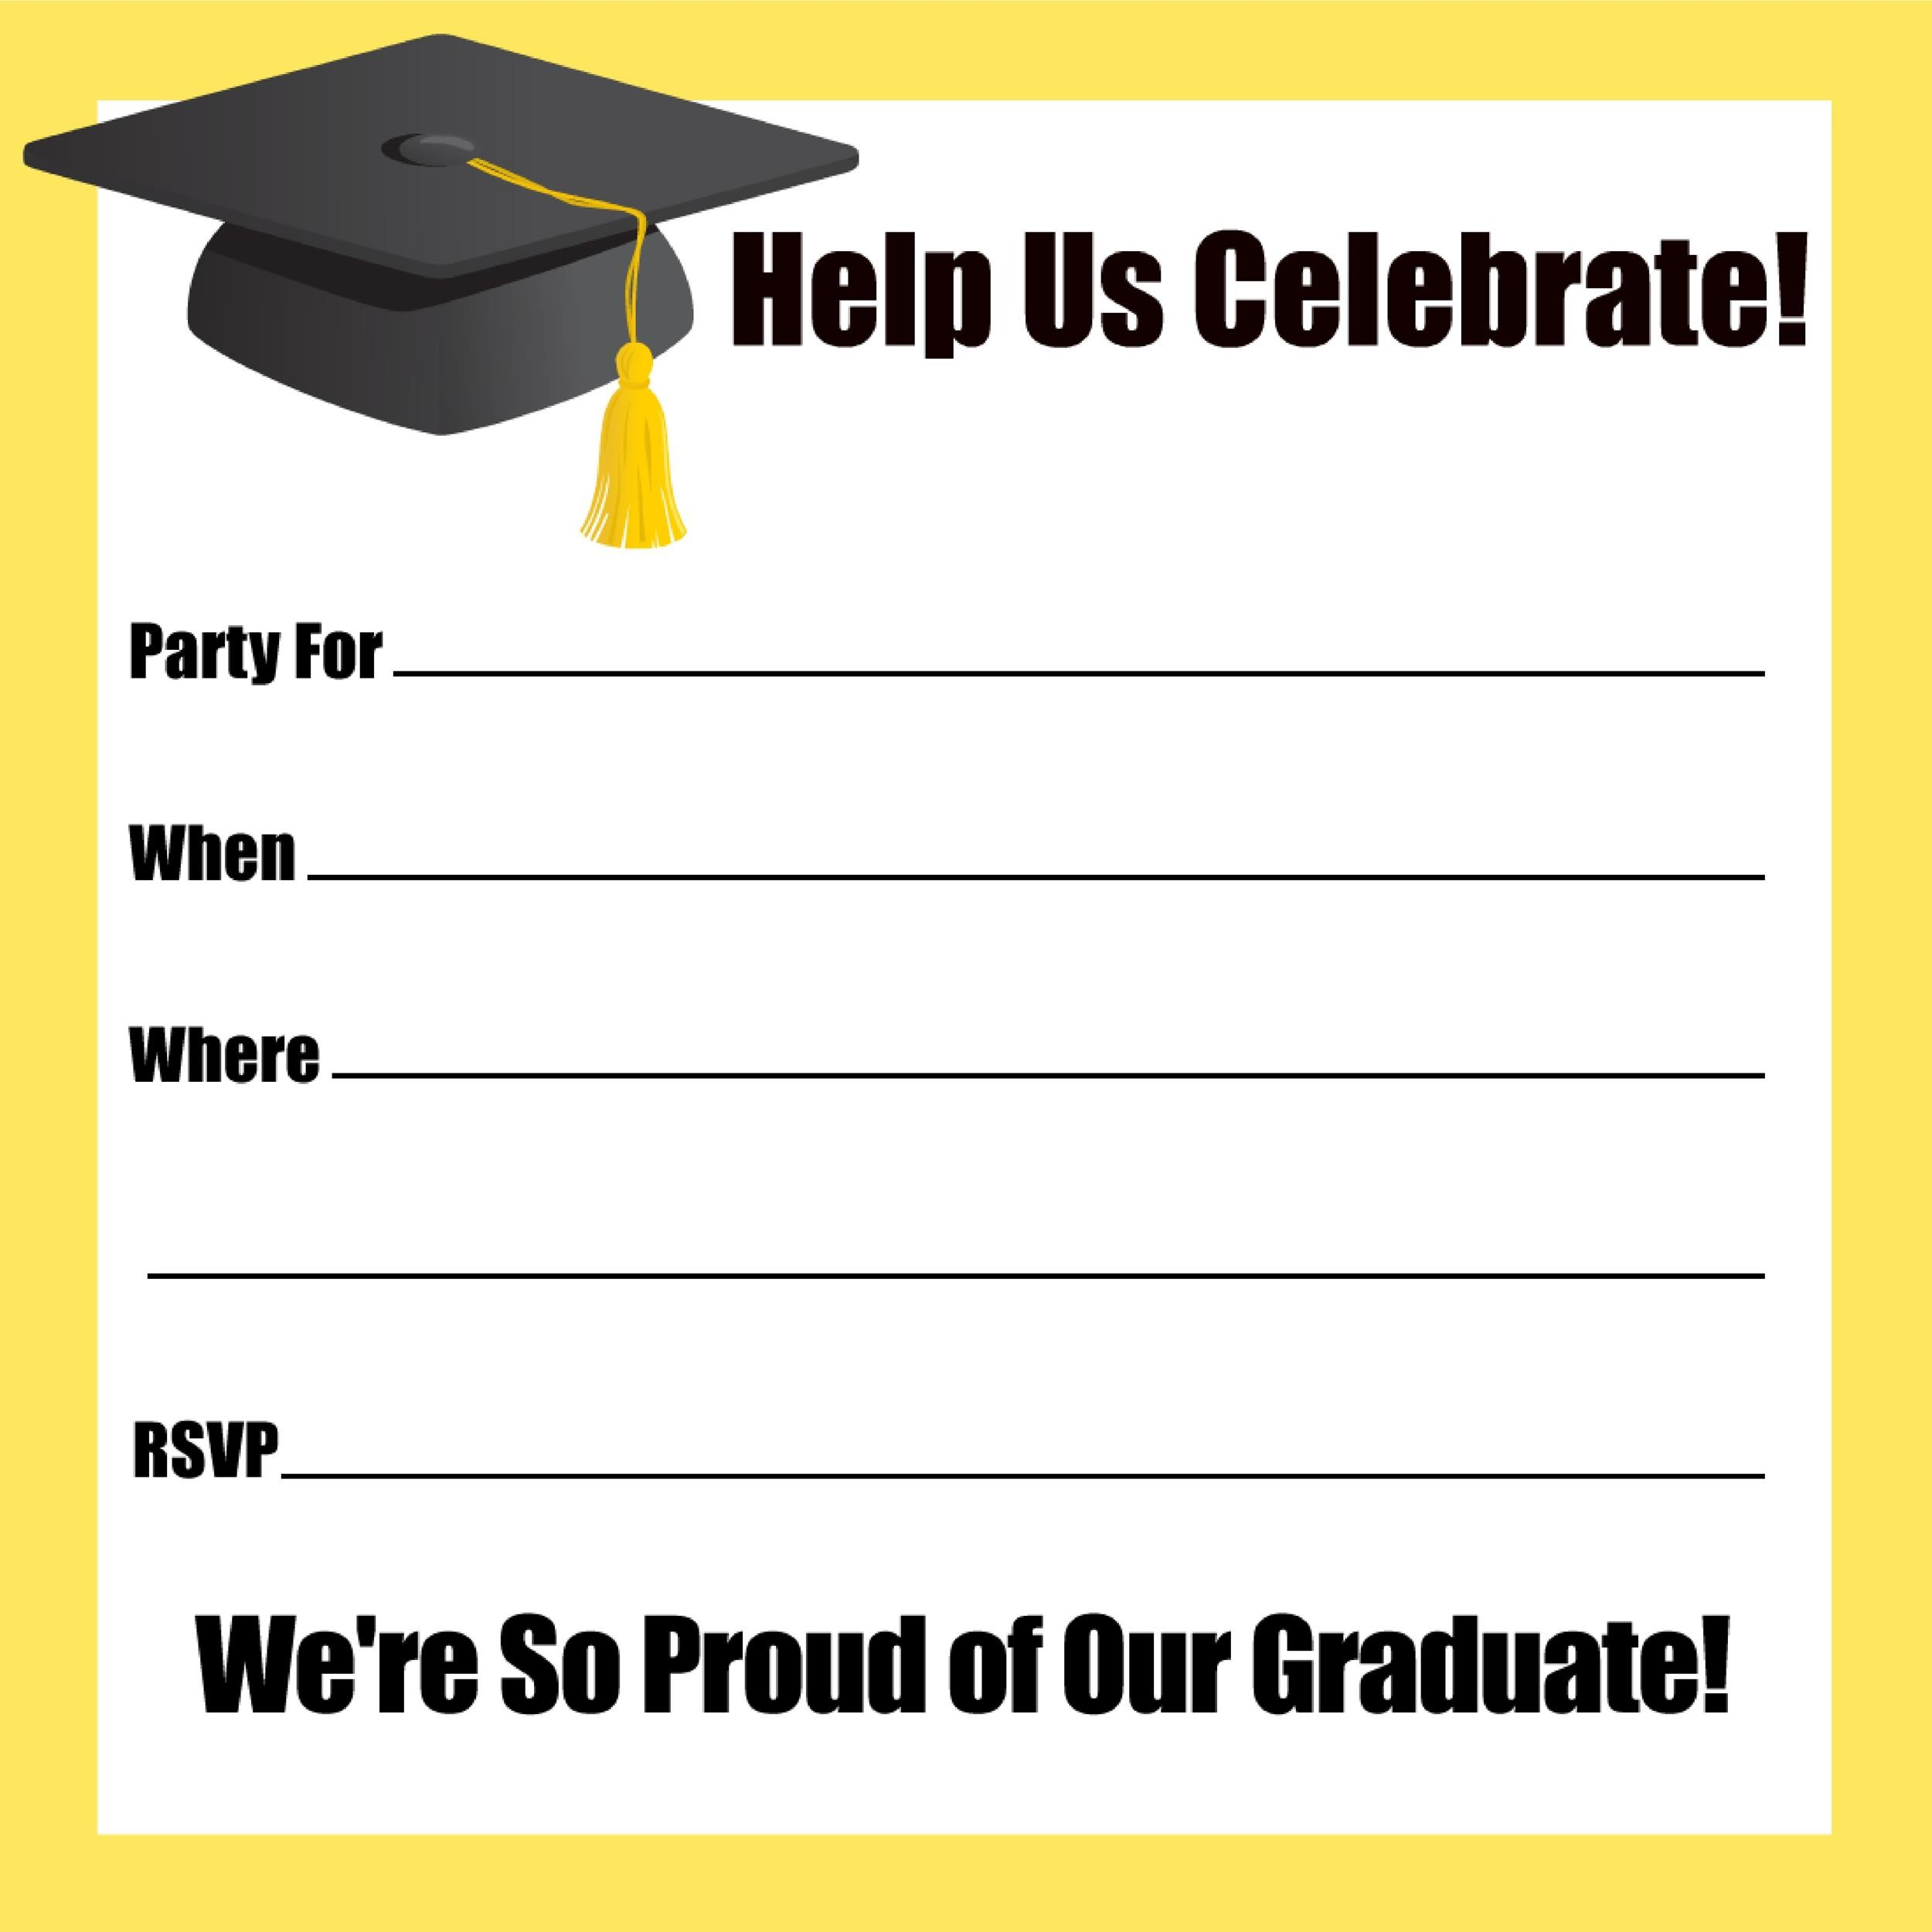 FREE Graduation Invitation Templates Template Lab - Free graduation announcements templates